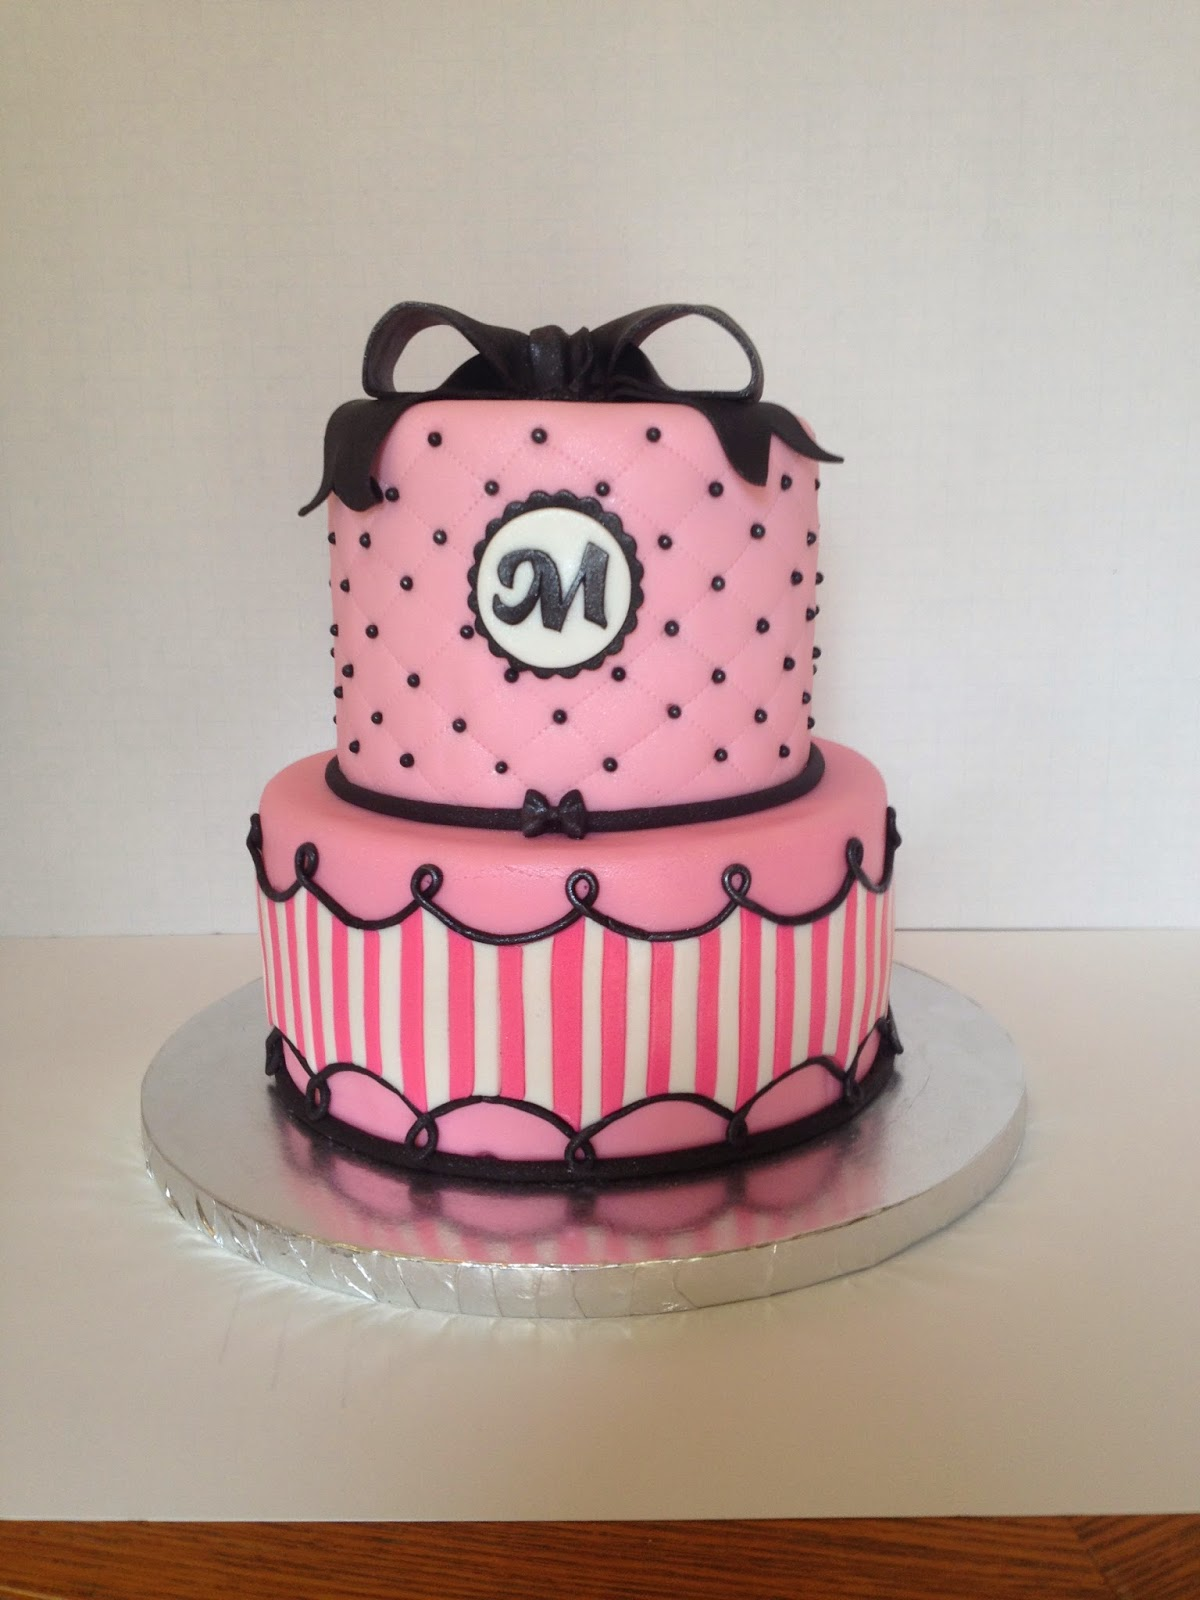 i heart cakes: Pink stripes & quilted cake